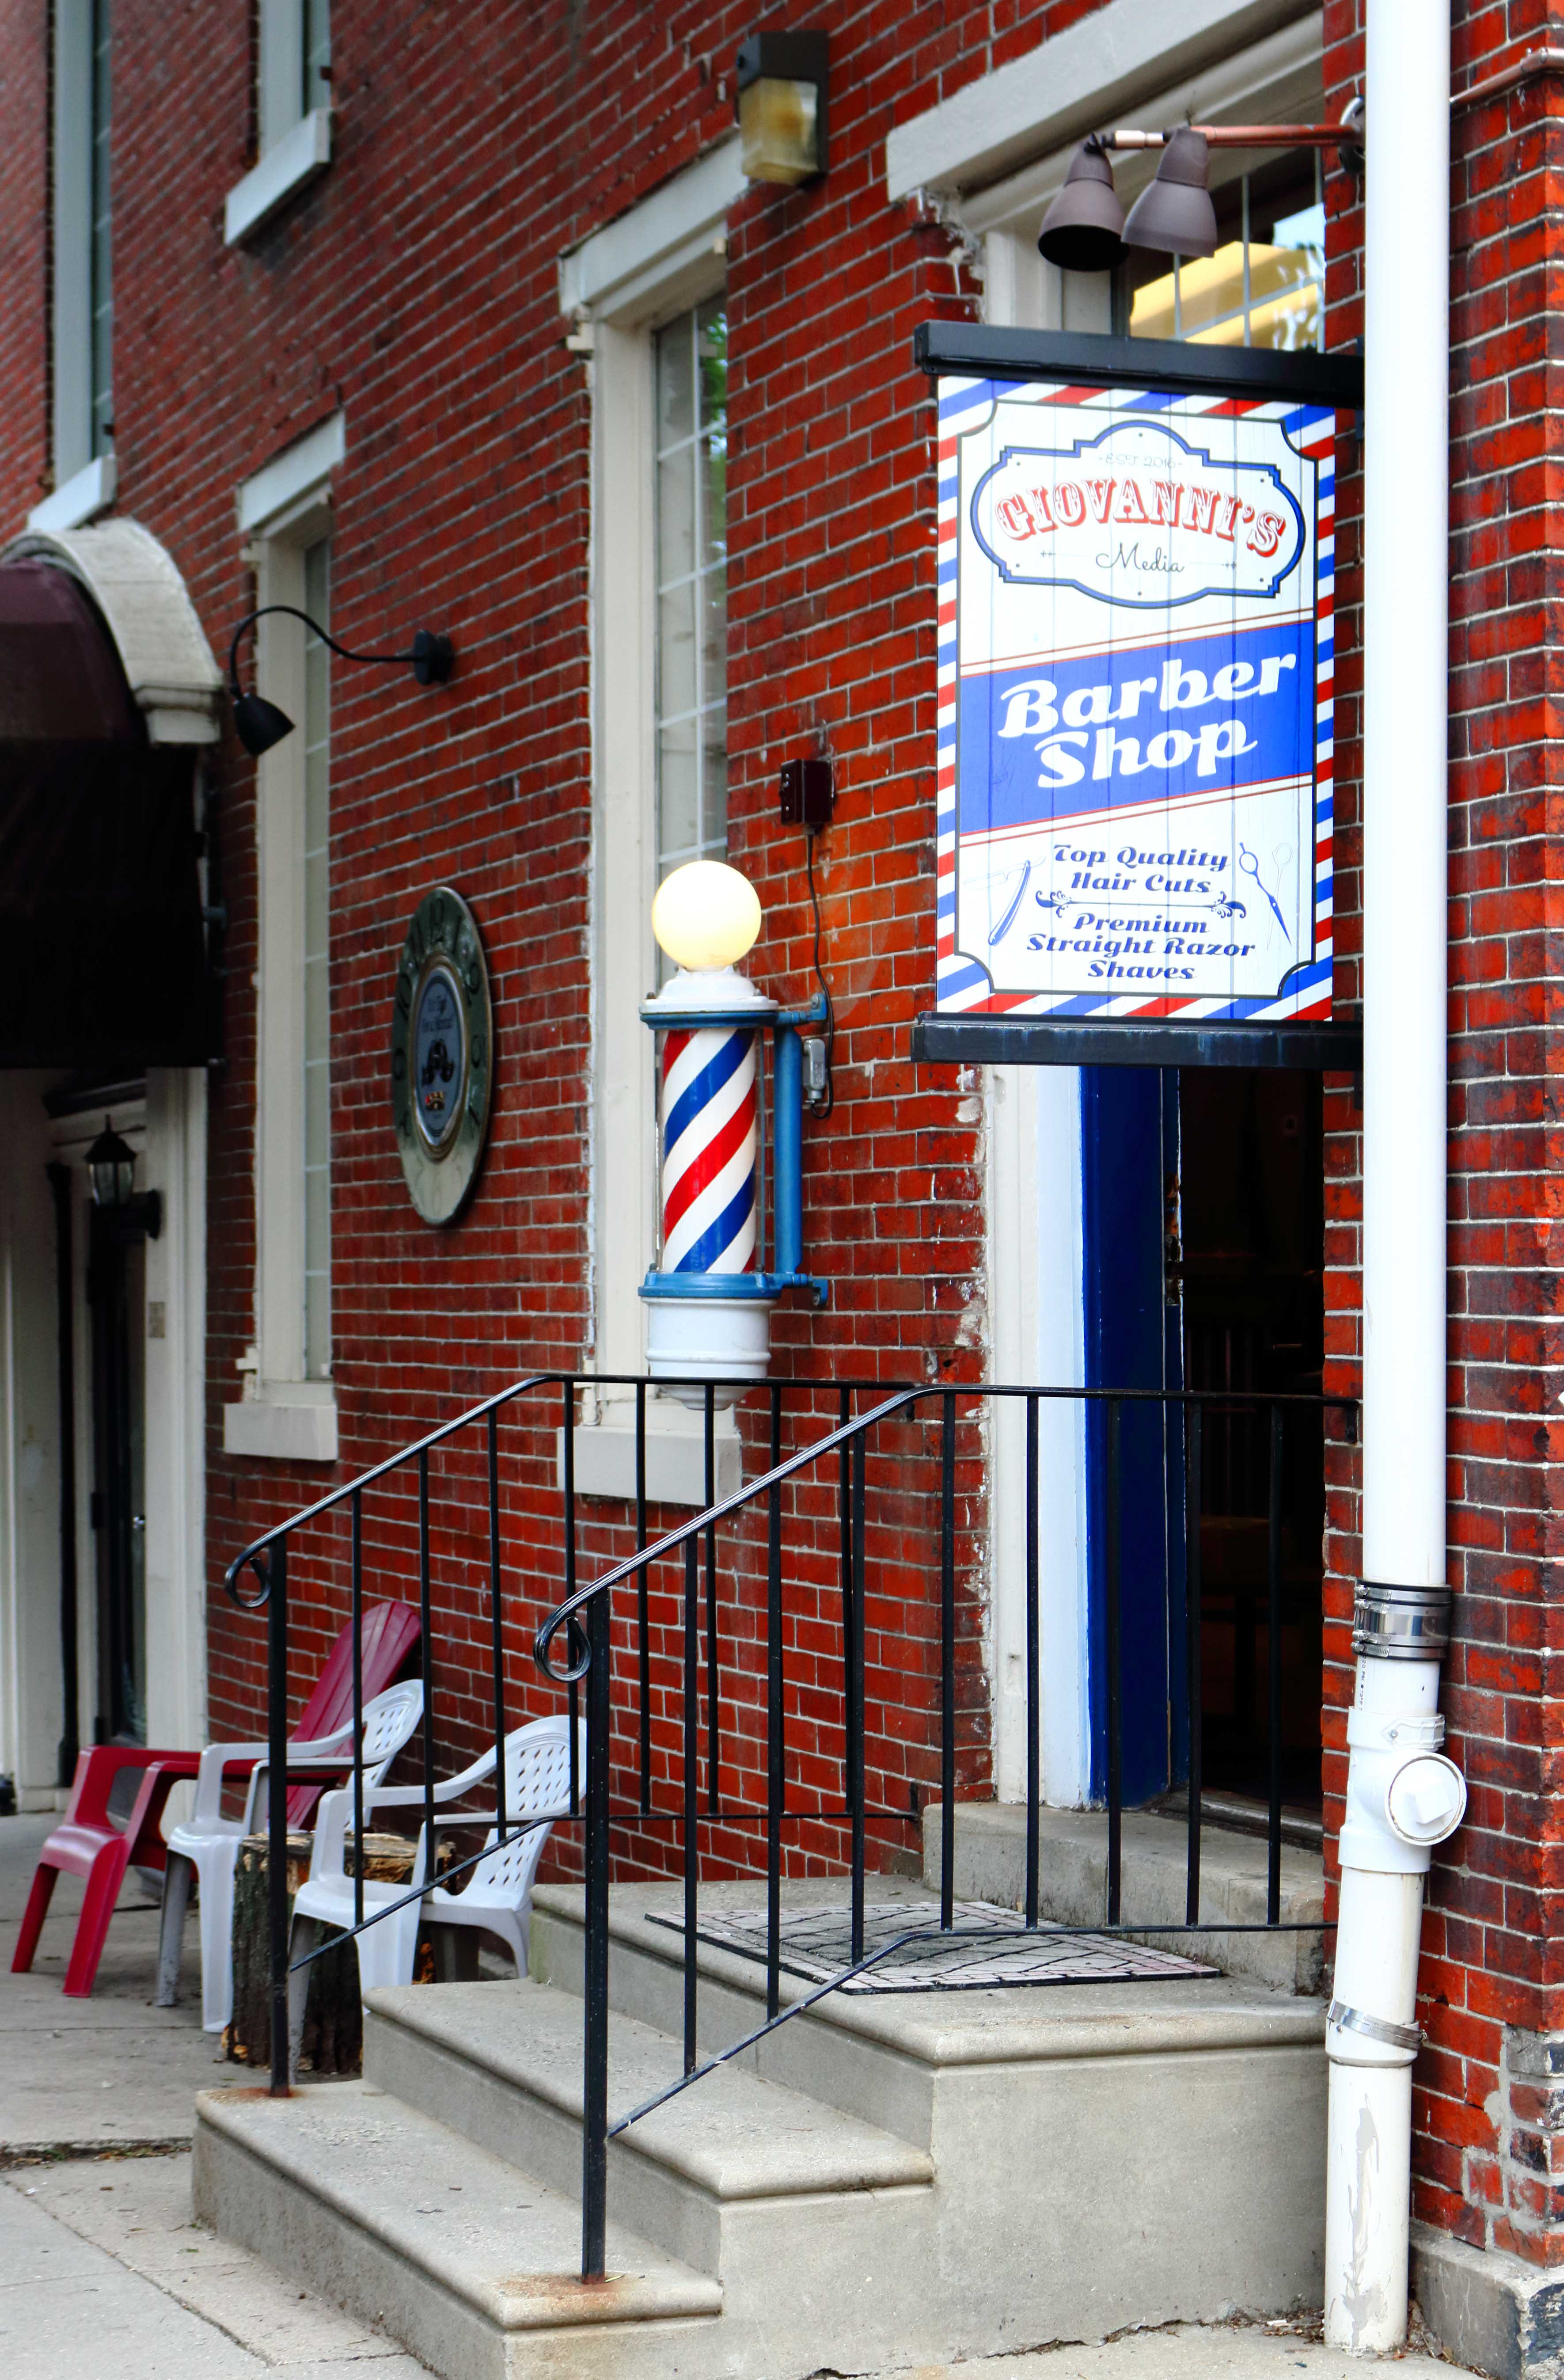 Giovannis barbershop at giovannis media barber shop our mission is to provide the highest quality service while successfully satisfying the needs of our clients winobraniefo Gallery